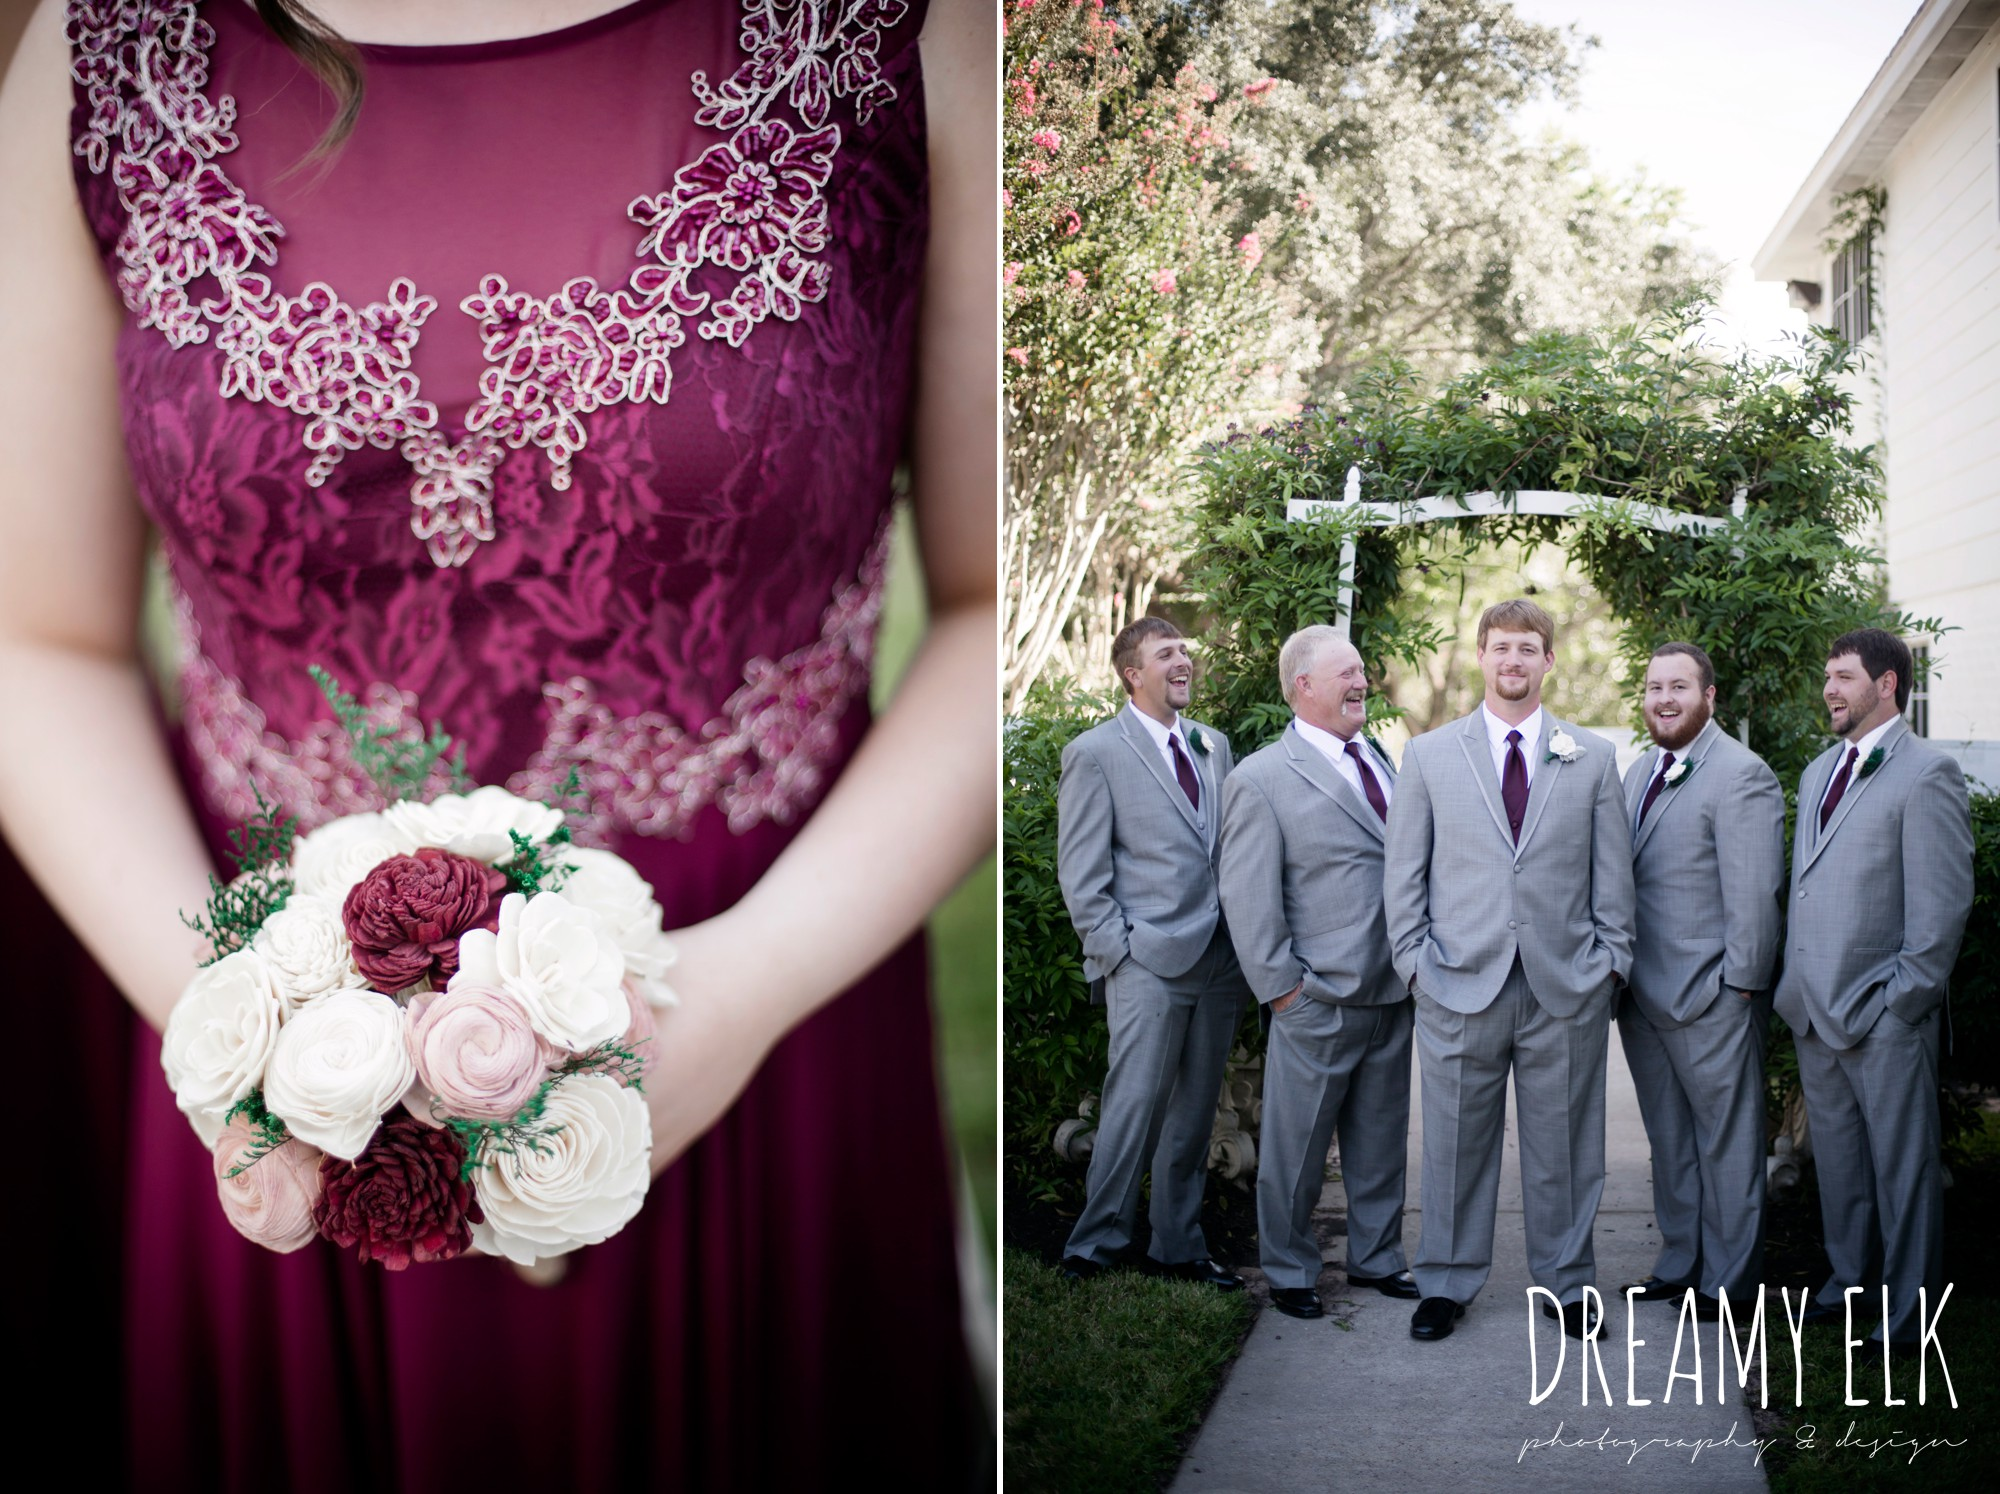 mix matched maroon long bridesmaids dress with embellishments, groom and groomsmen, men's wearhouse gray tux with maroon vest and tie, september wedding photo, ashelynn manor, magnolia, texas, austin texas wedding photographer {dreamy elk photography and design}